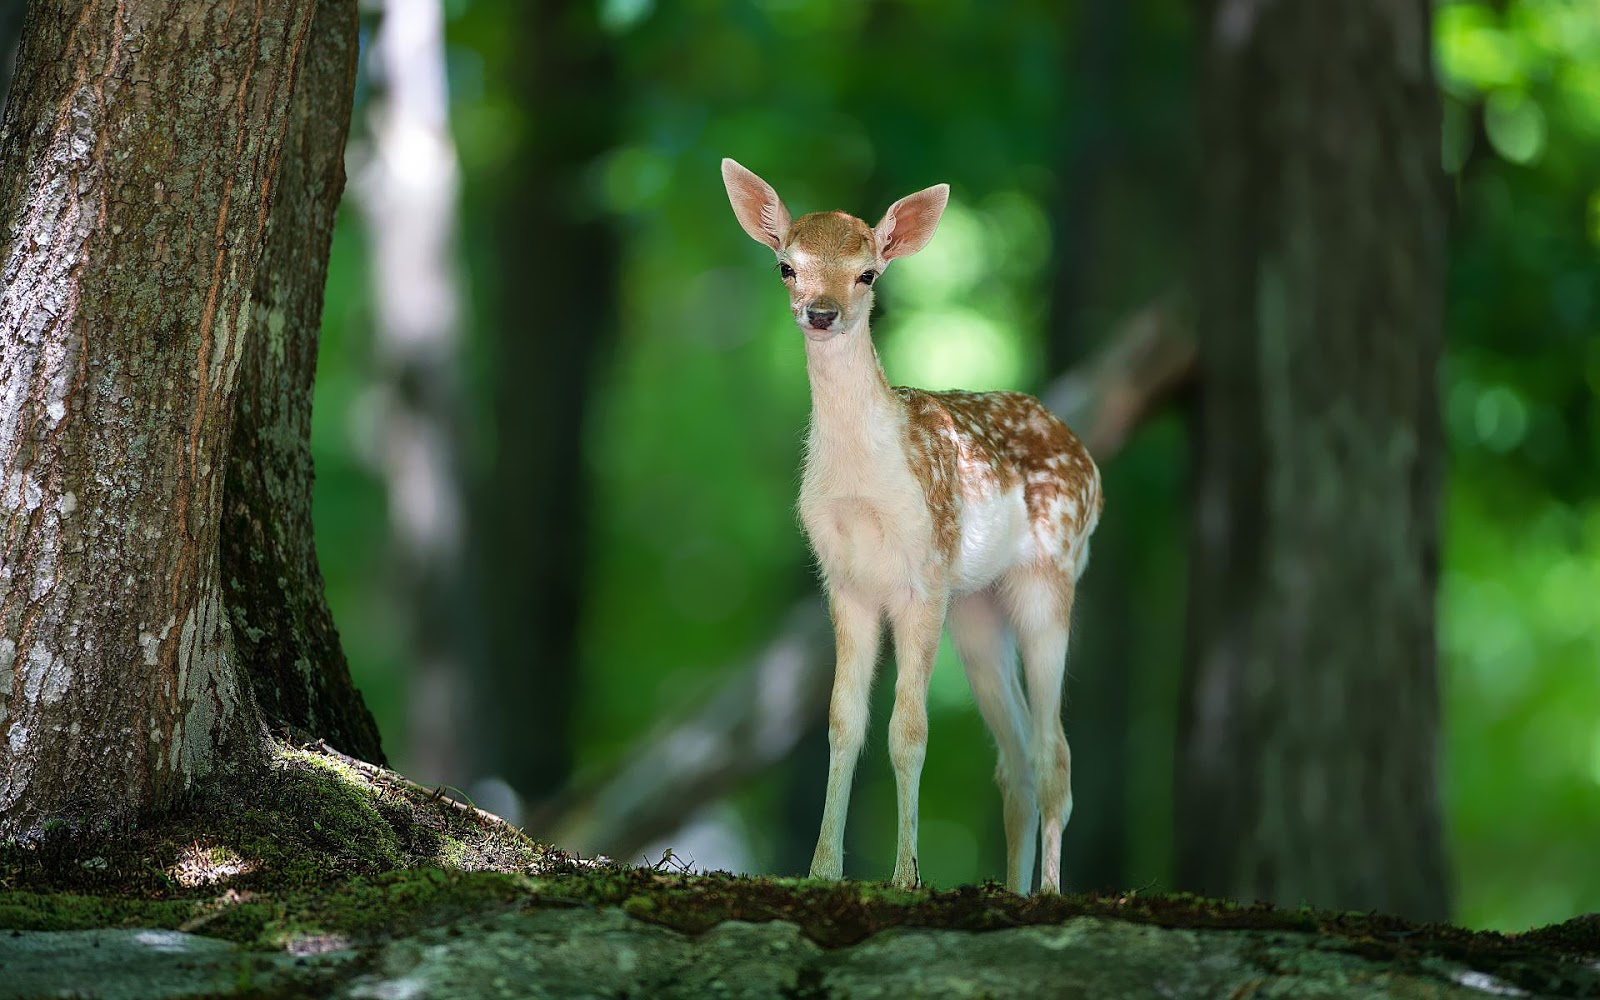 http://2.bp.blogspot.com/-zOFf4fpHuGs/UNWF_zMXRbI/AAAAAAAAJdQ/HwZNj3b2vdM/s1600/hd-animal-wallpaper-of-a-young-deer-in-the-forest-hd-deers-wallpapers.jpg